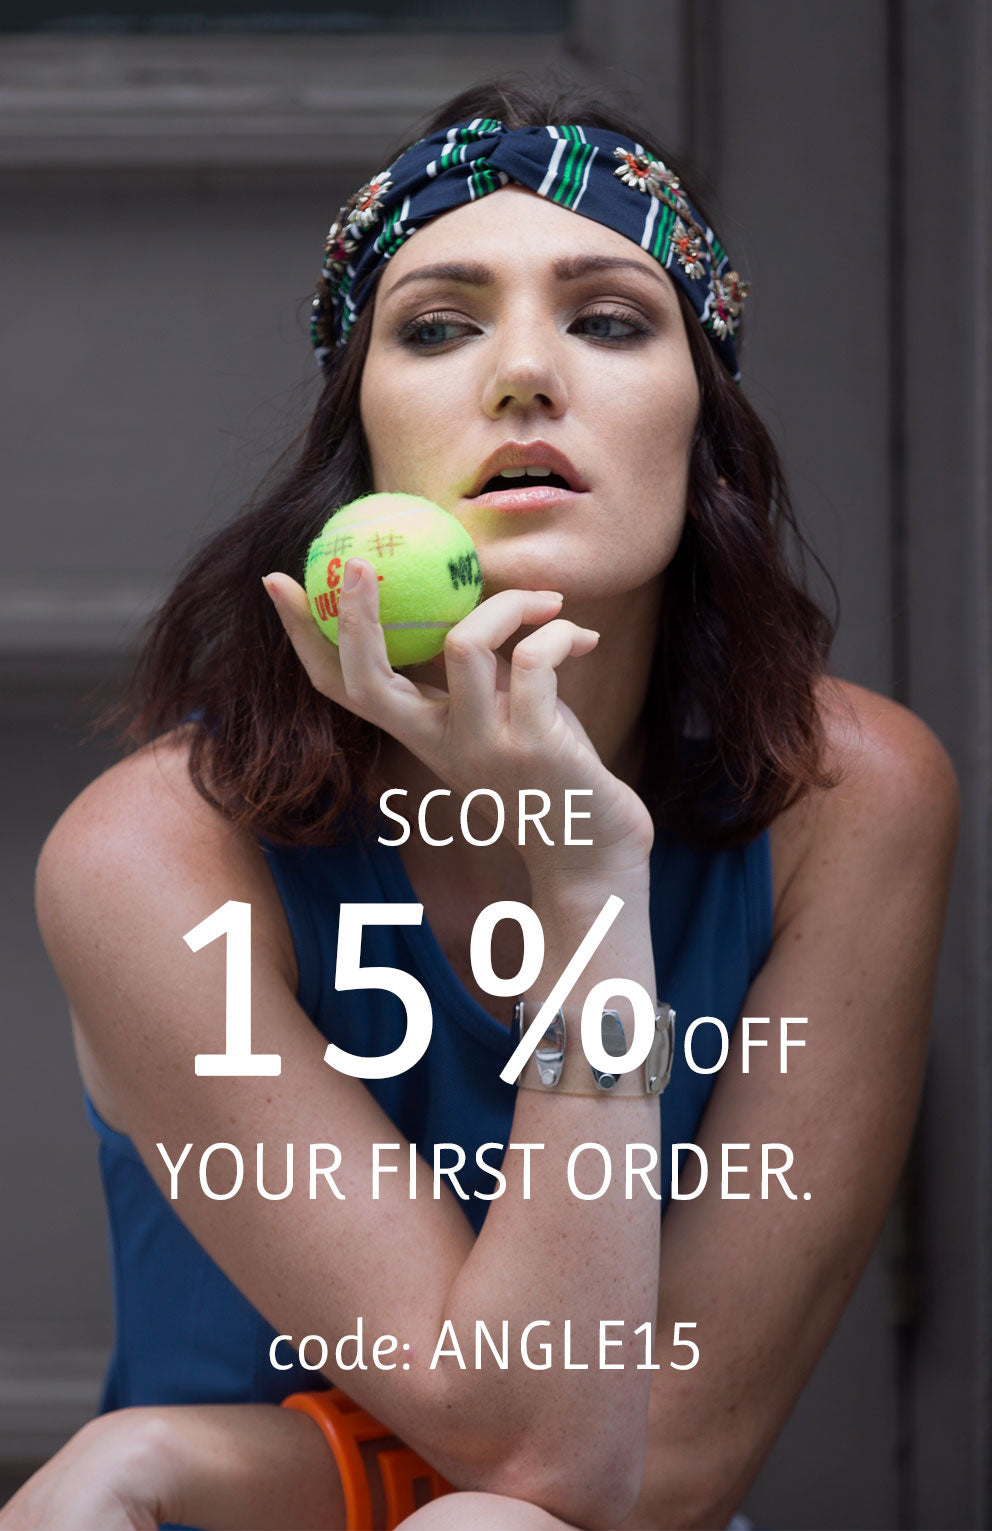 Score 20% off your first order